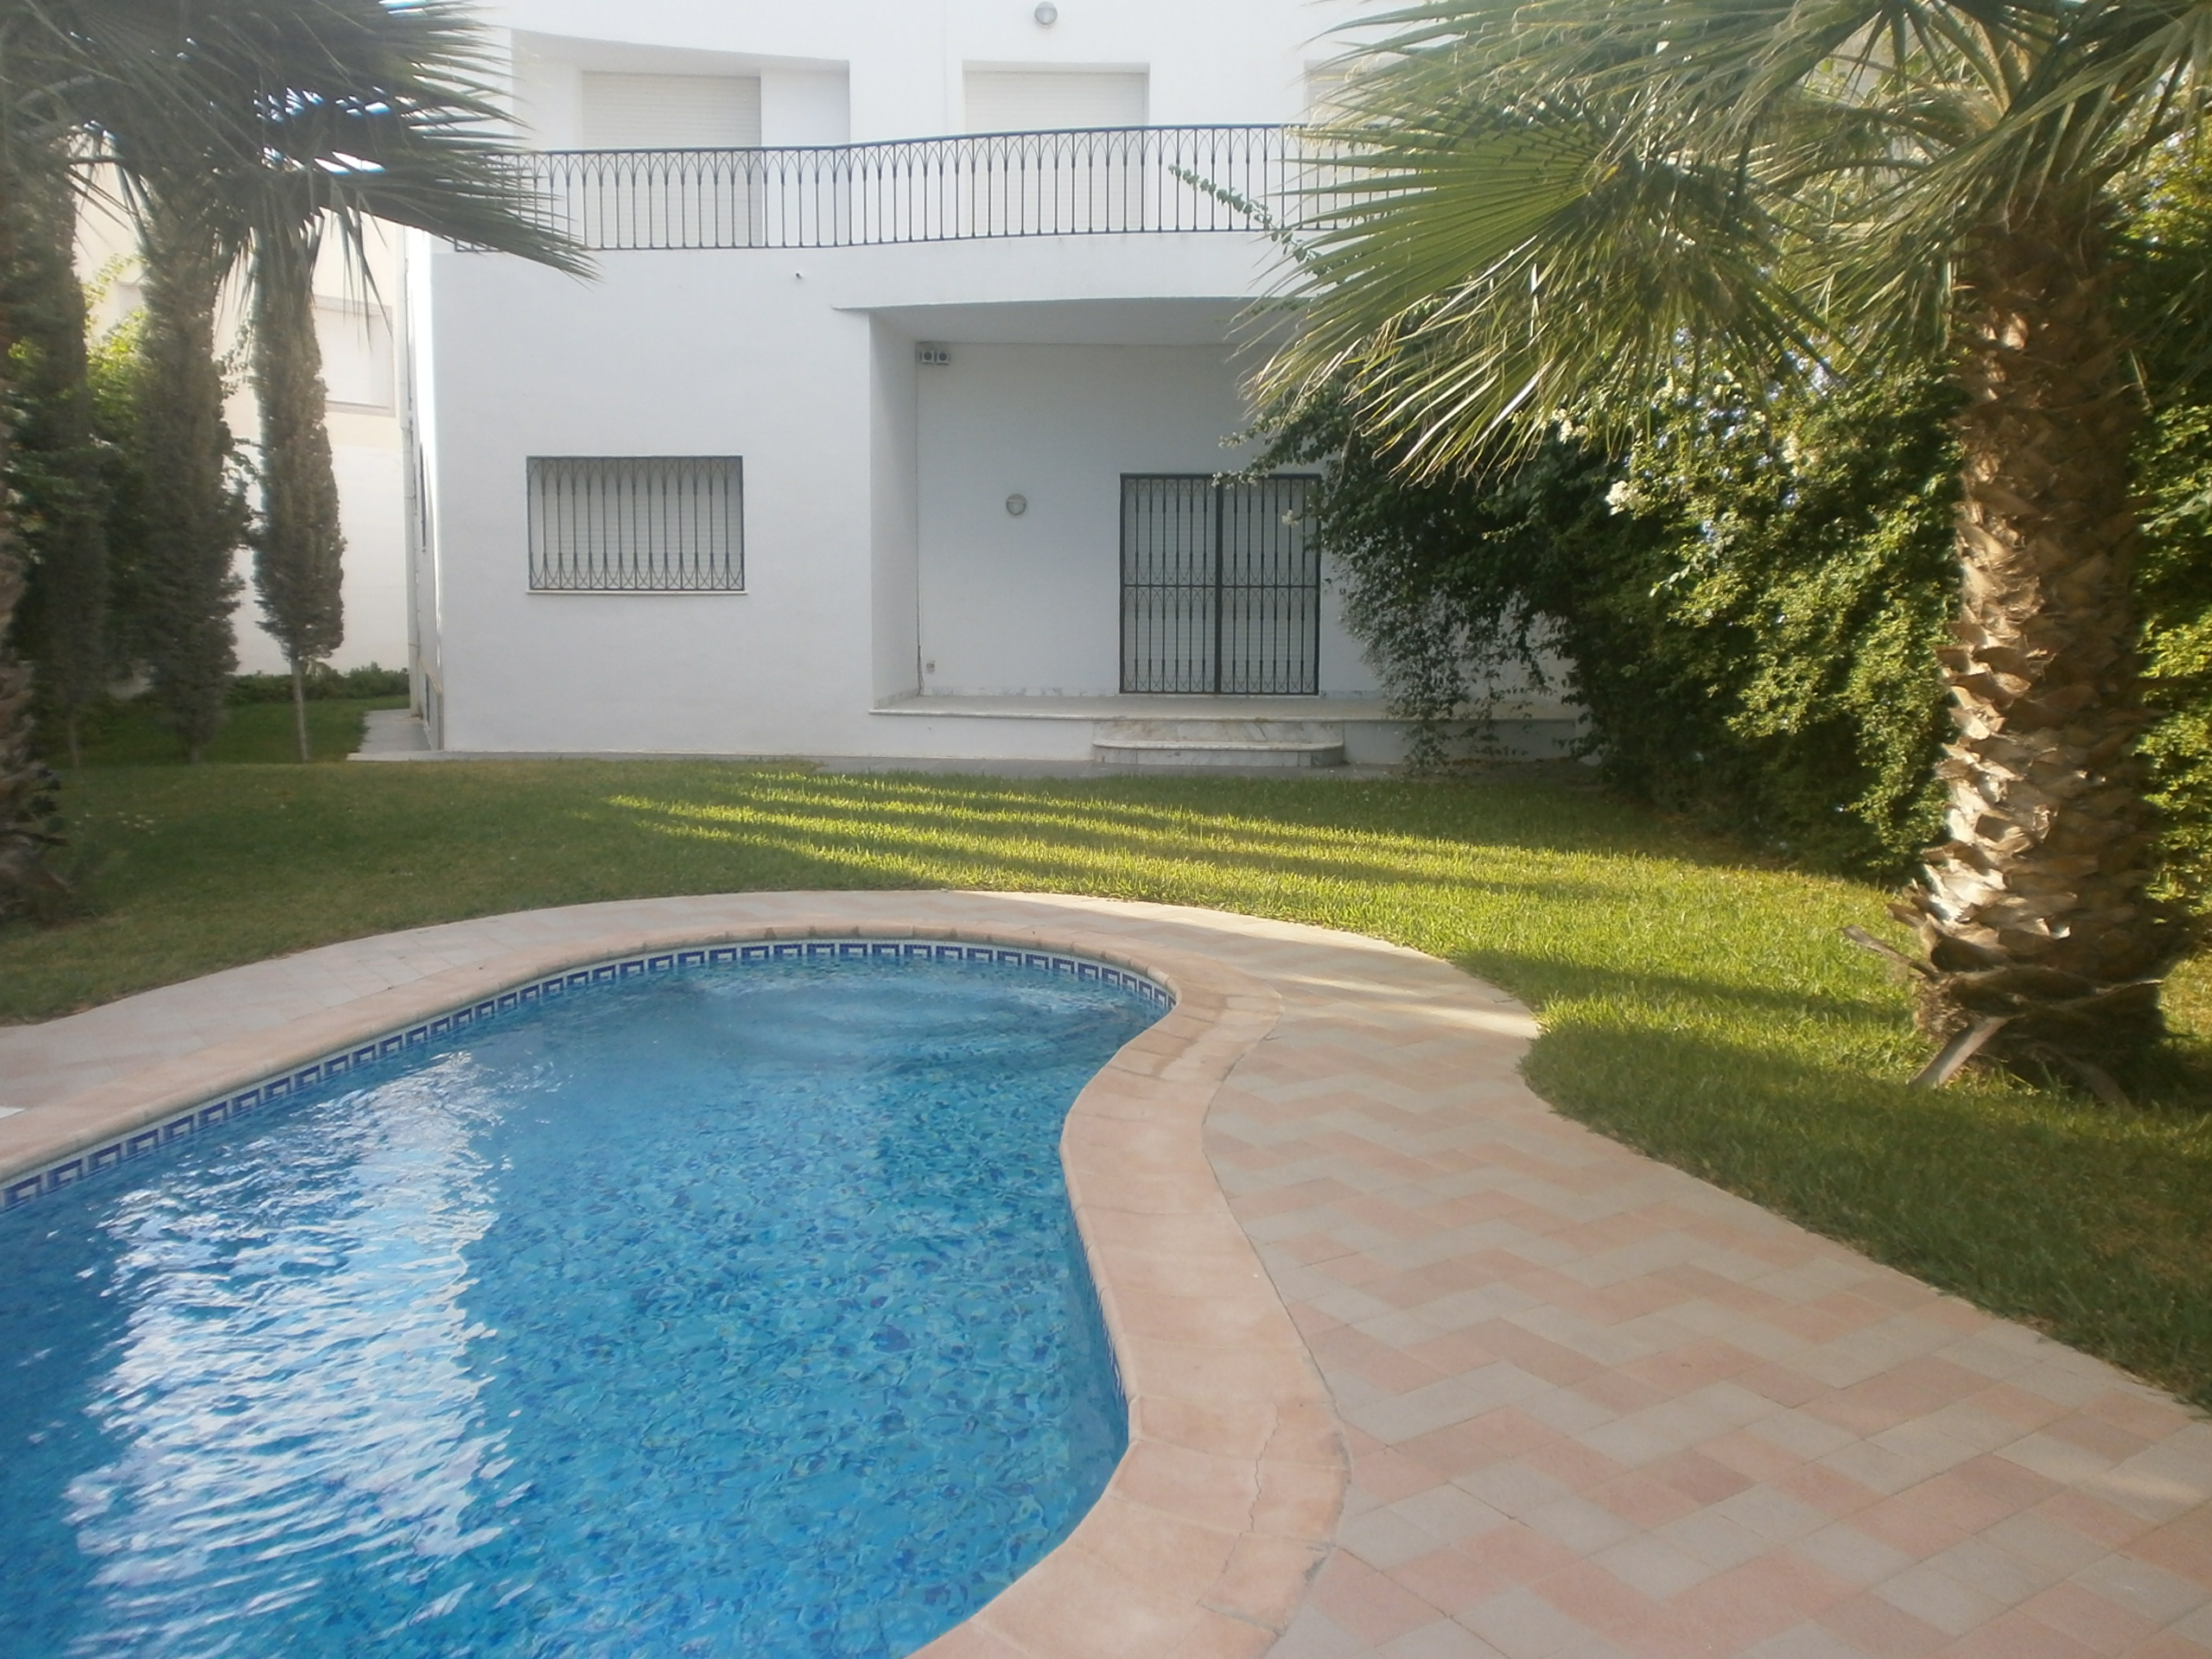 Jardin de carthage property city agence immobiliere for Jardin 2000 tunisie